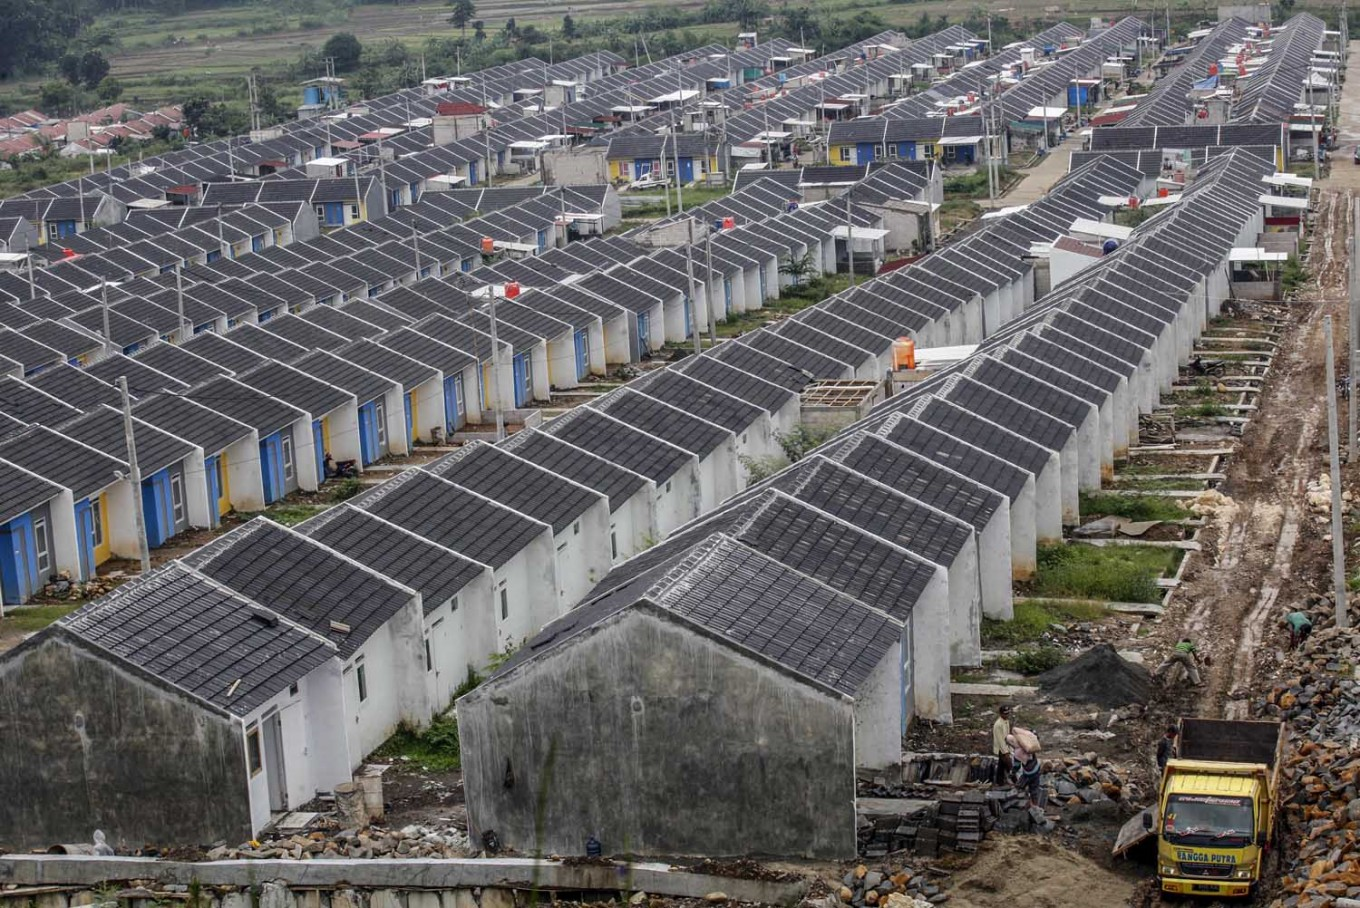 Property market unaffected by coronavirus, but share prices plunge